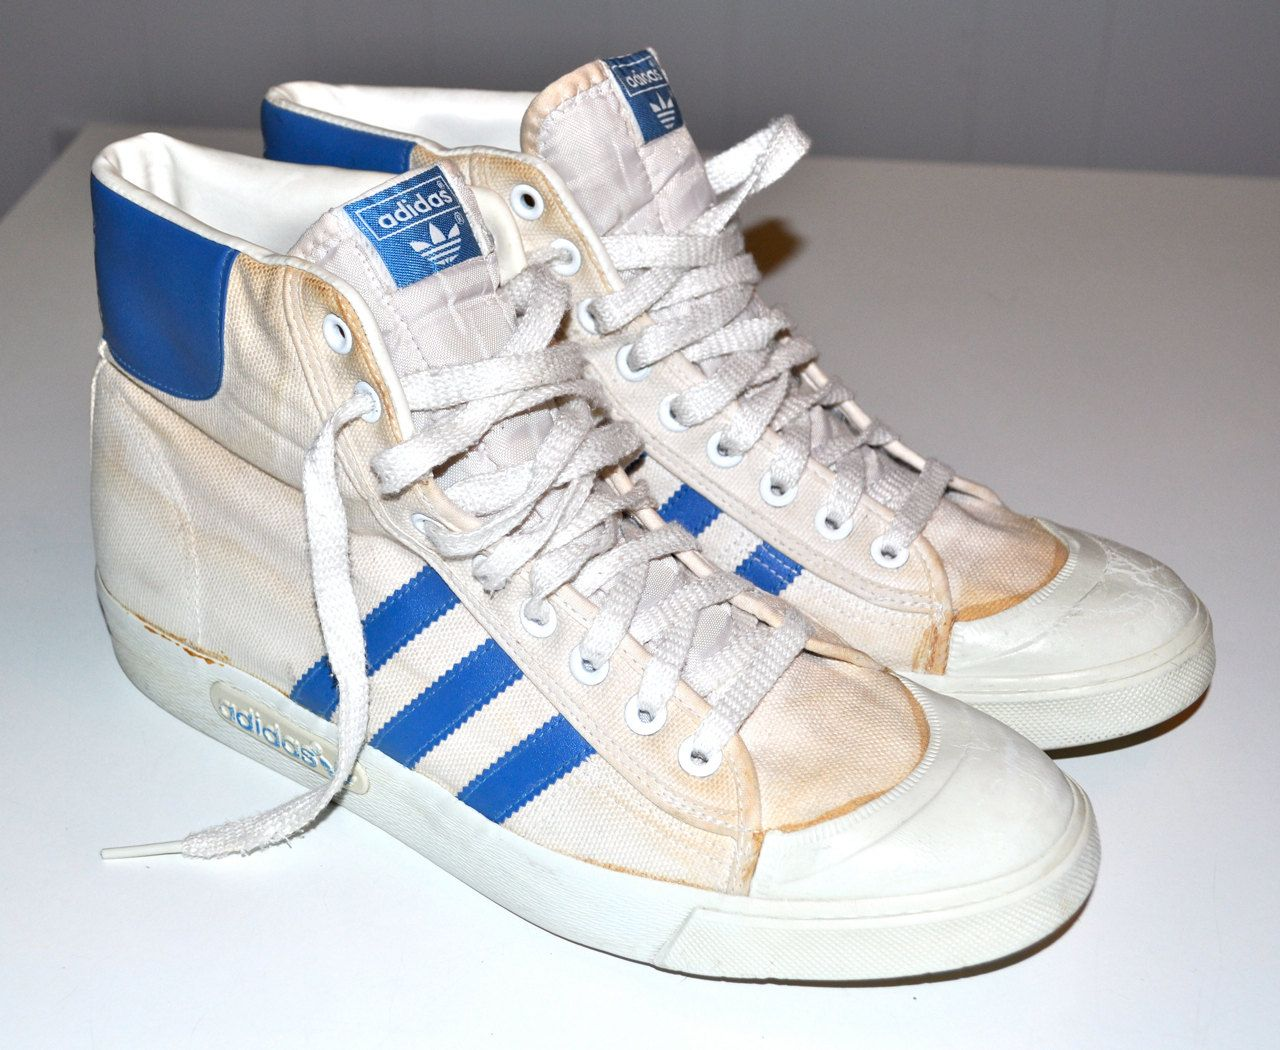 ADIDAS 1980s Vintage High Top Sneakers Basketball Shoes Canvas Mens 12  Super Rare Made in Taiwan